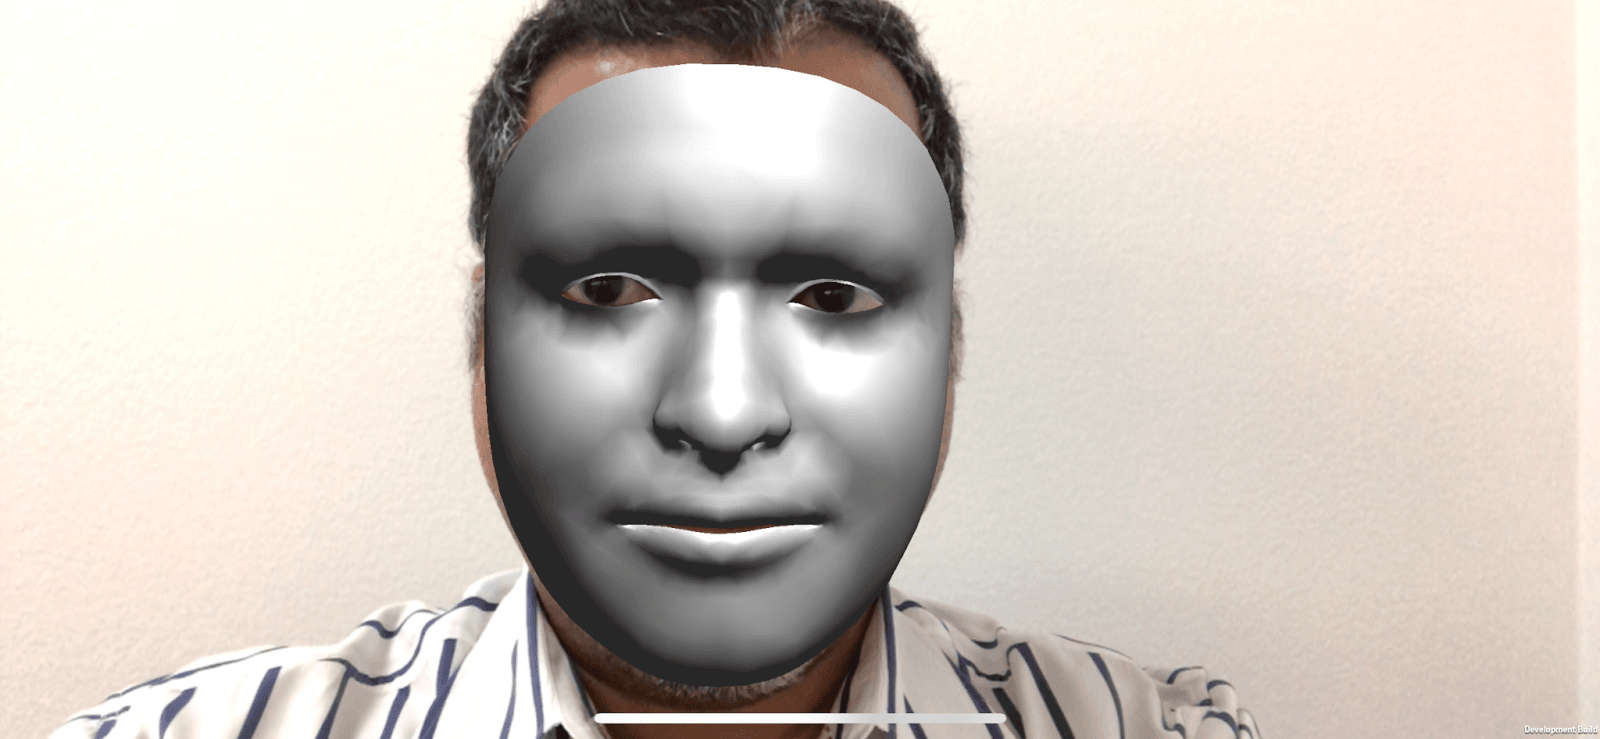 Getting started with iPhone X face tracking in Unity